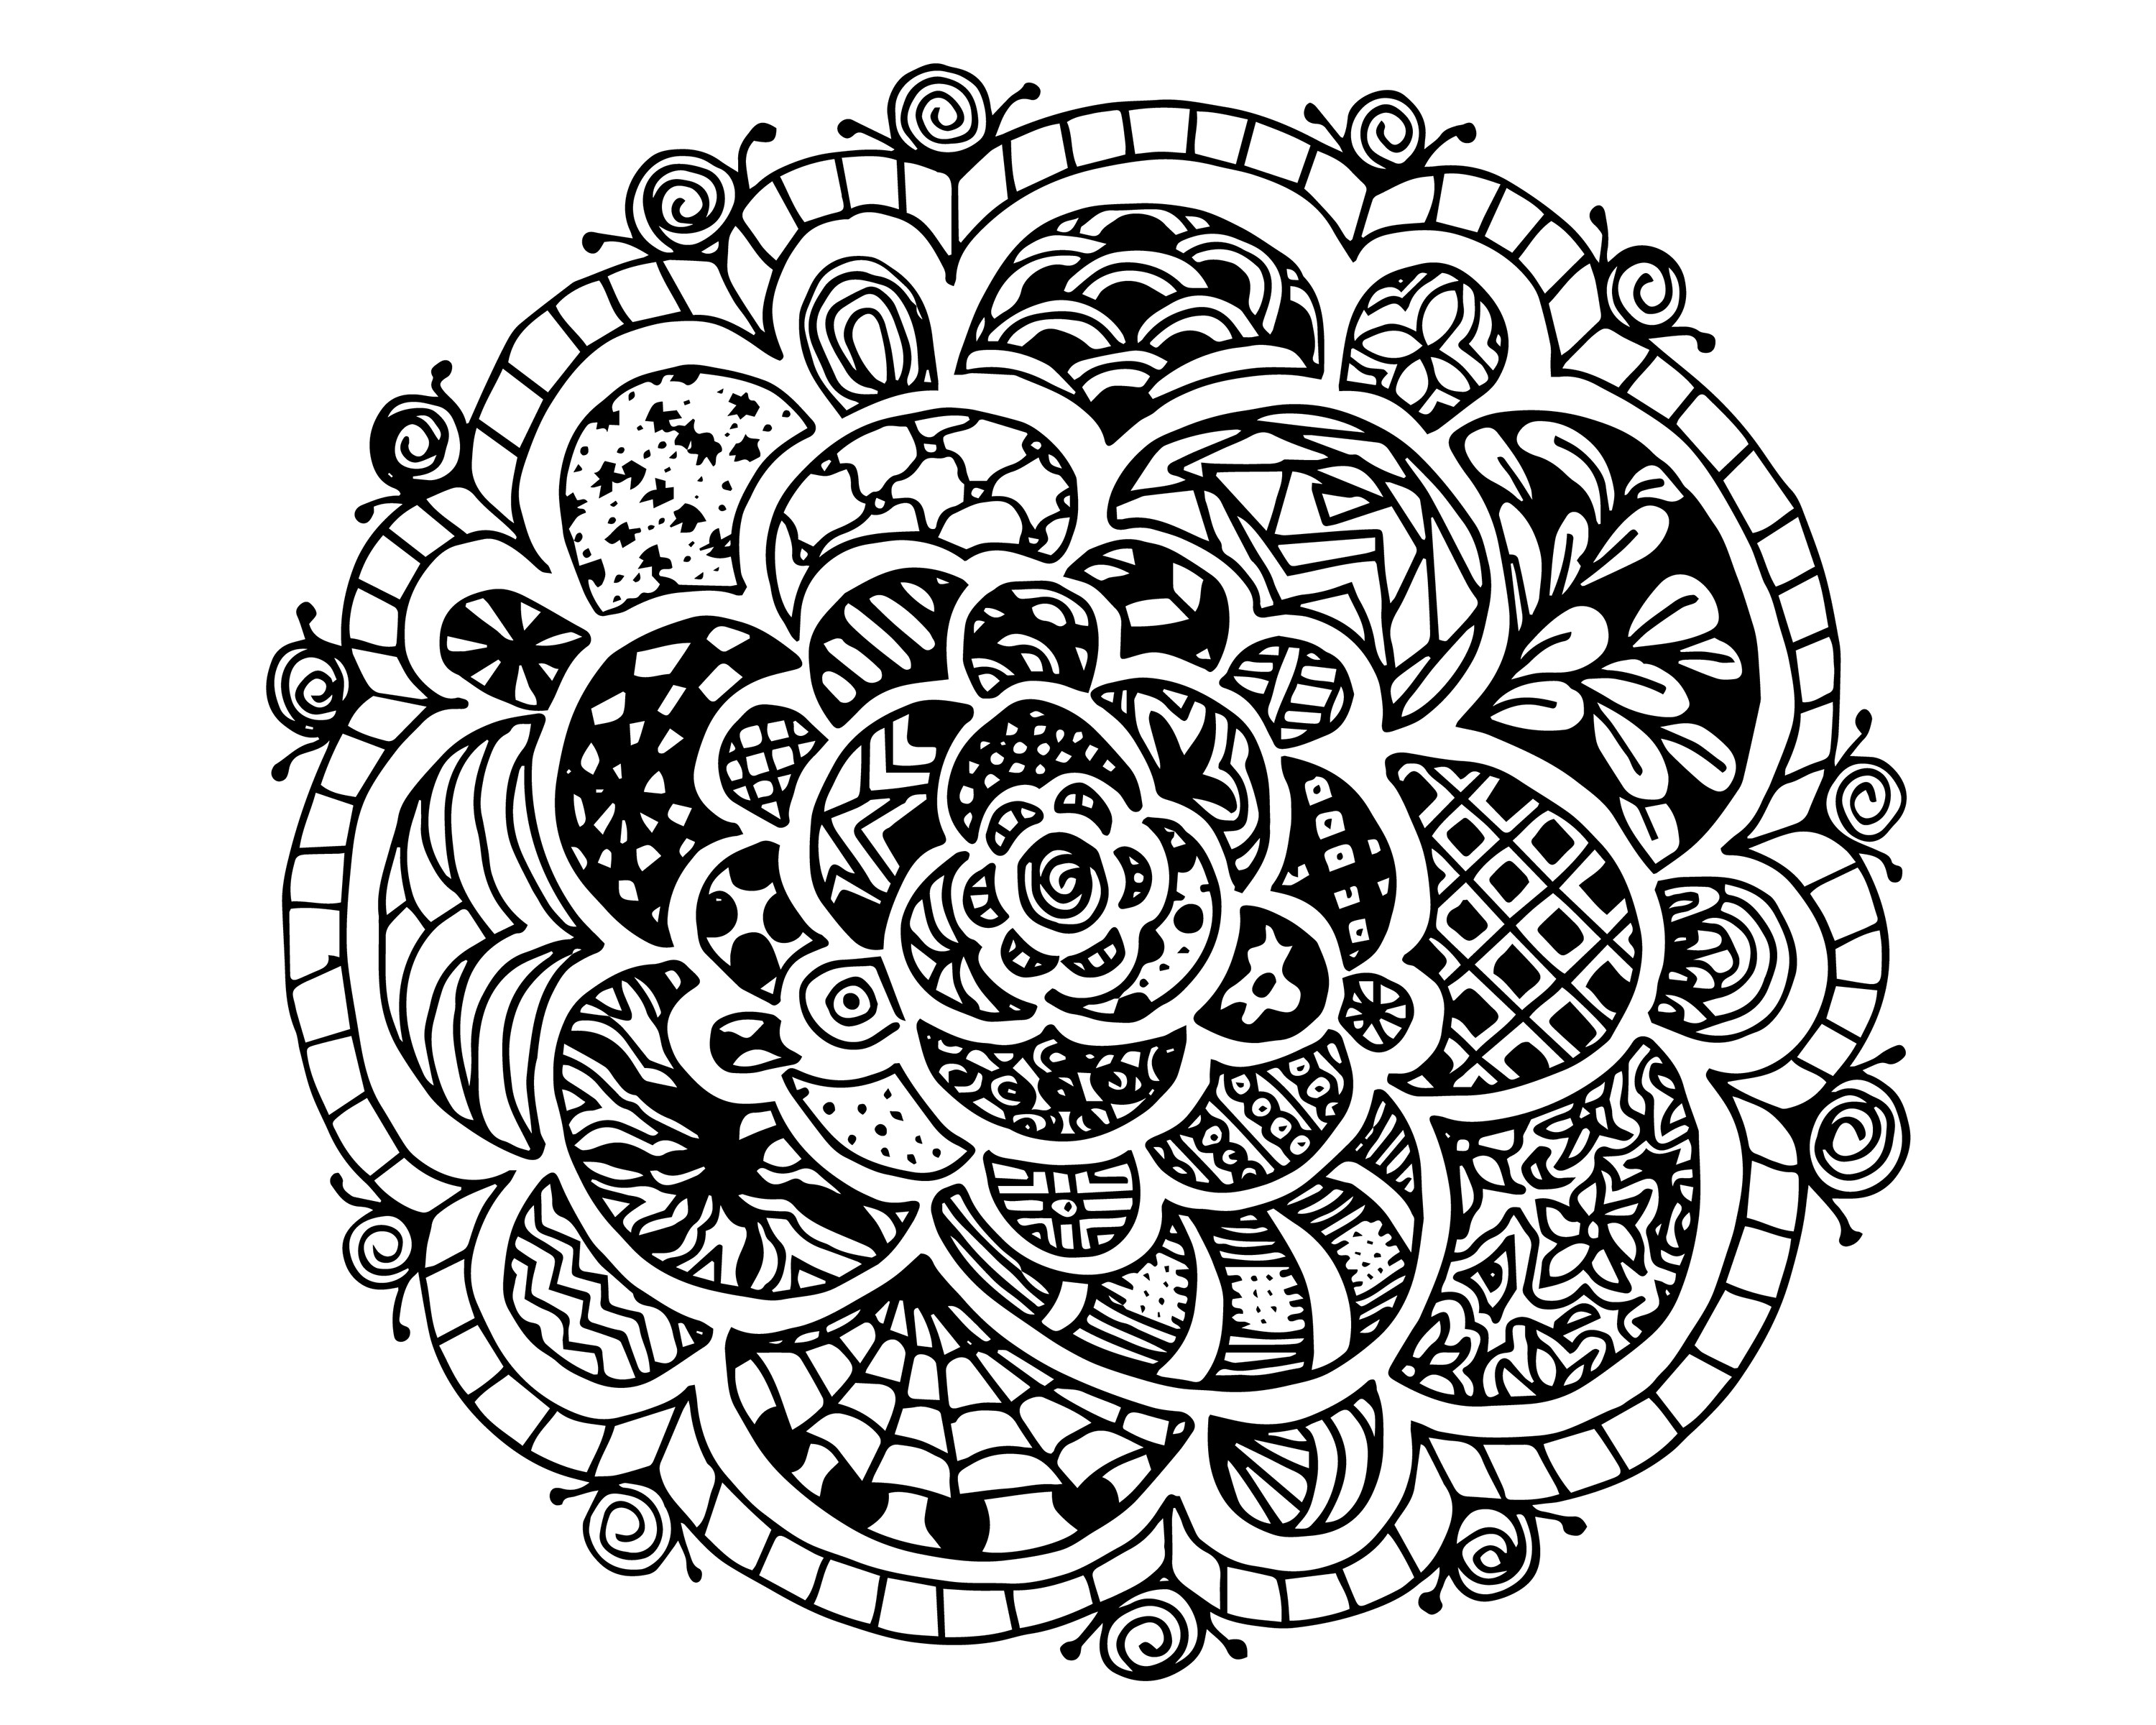 colorful coloring pages - coloring pages for teens best coloring pages for kids